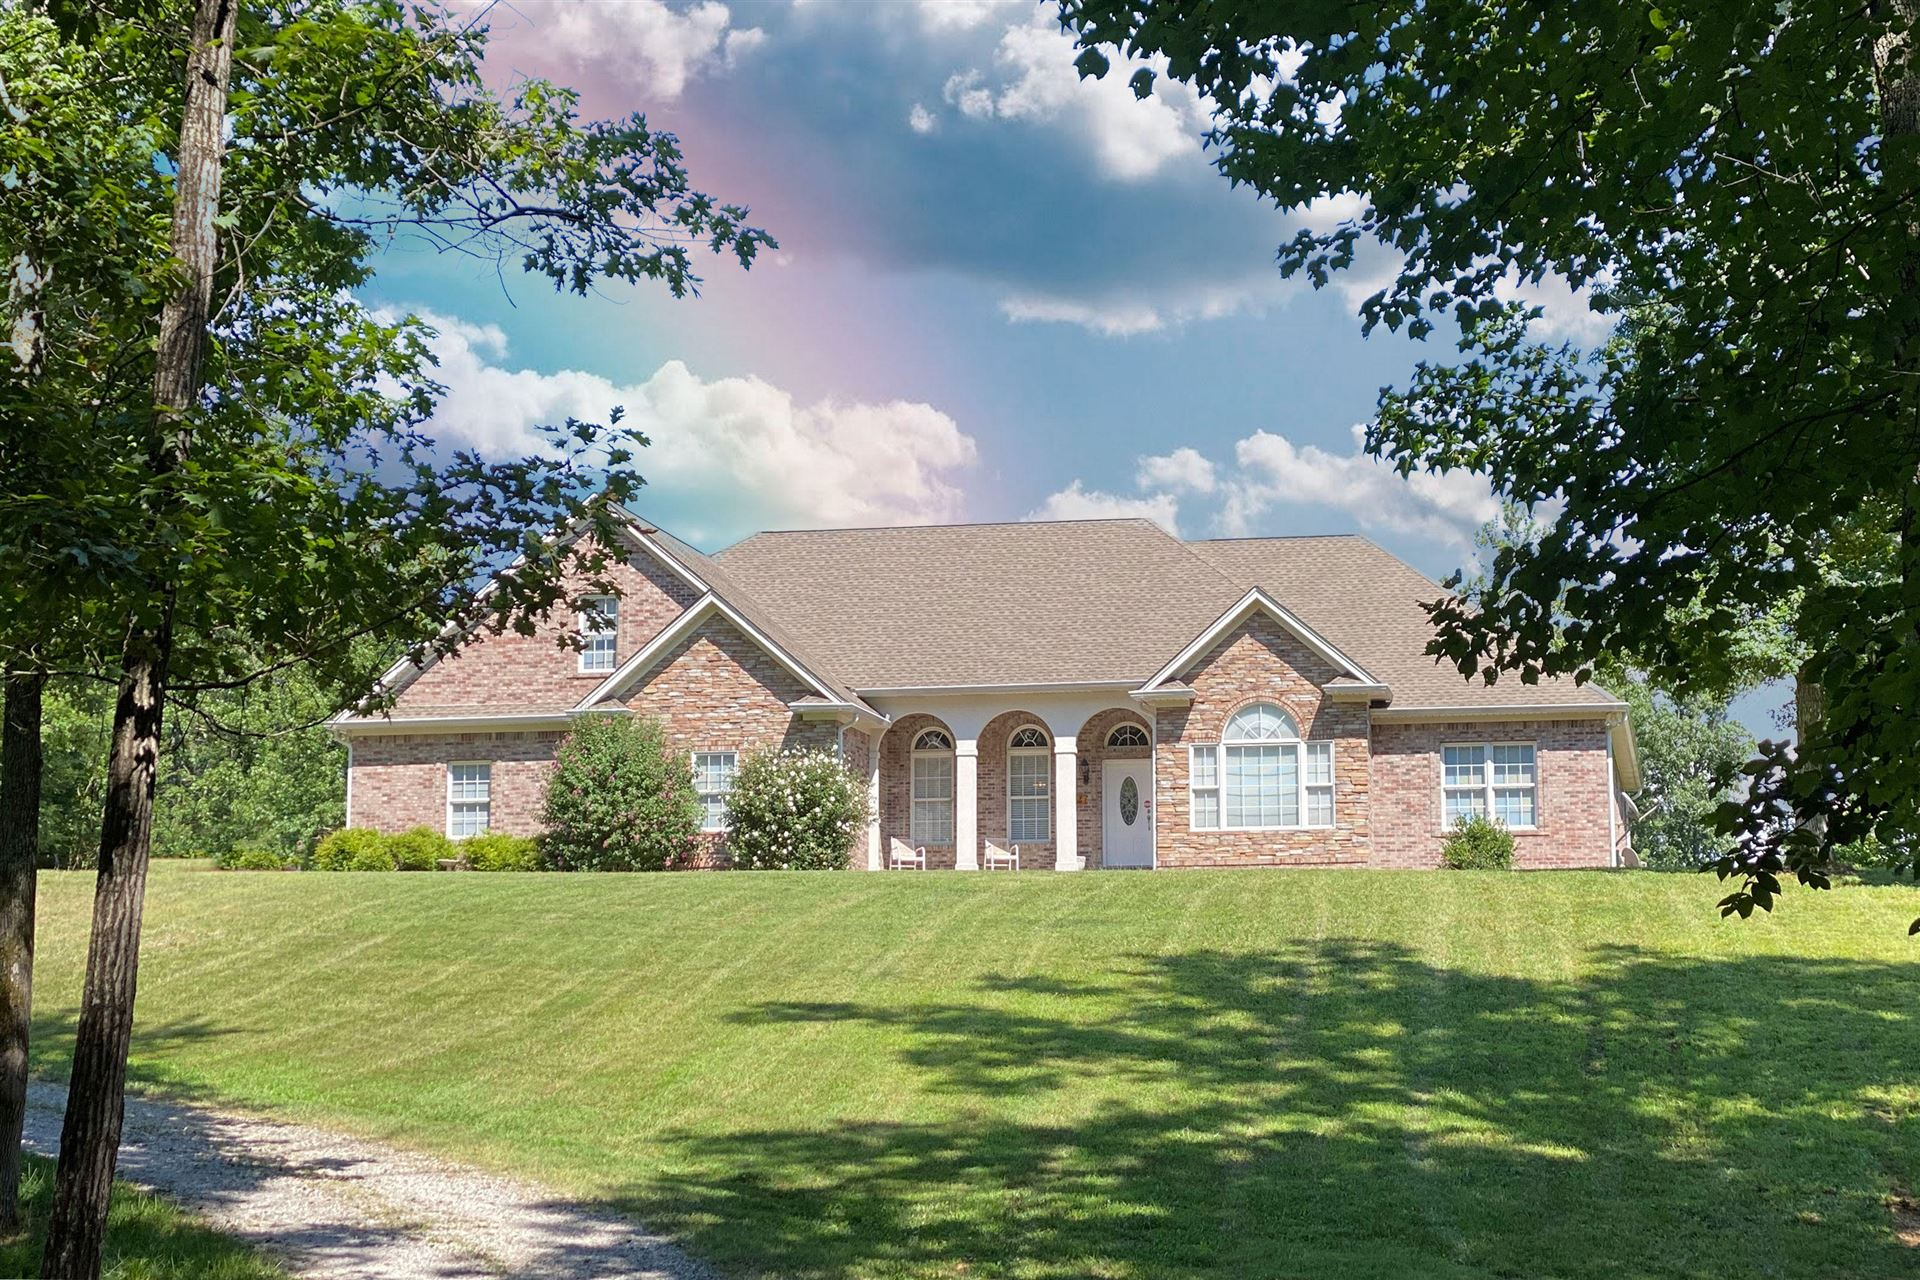 589 Johnston Rd, McDonald, TN 37353 - MLS#: 1321802